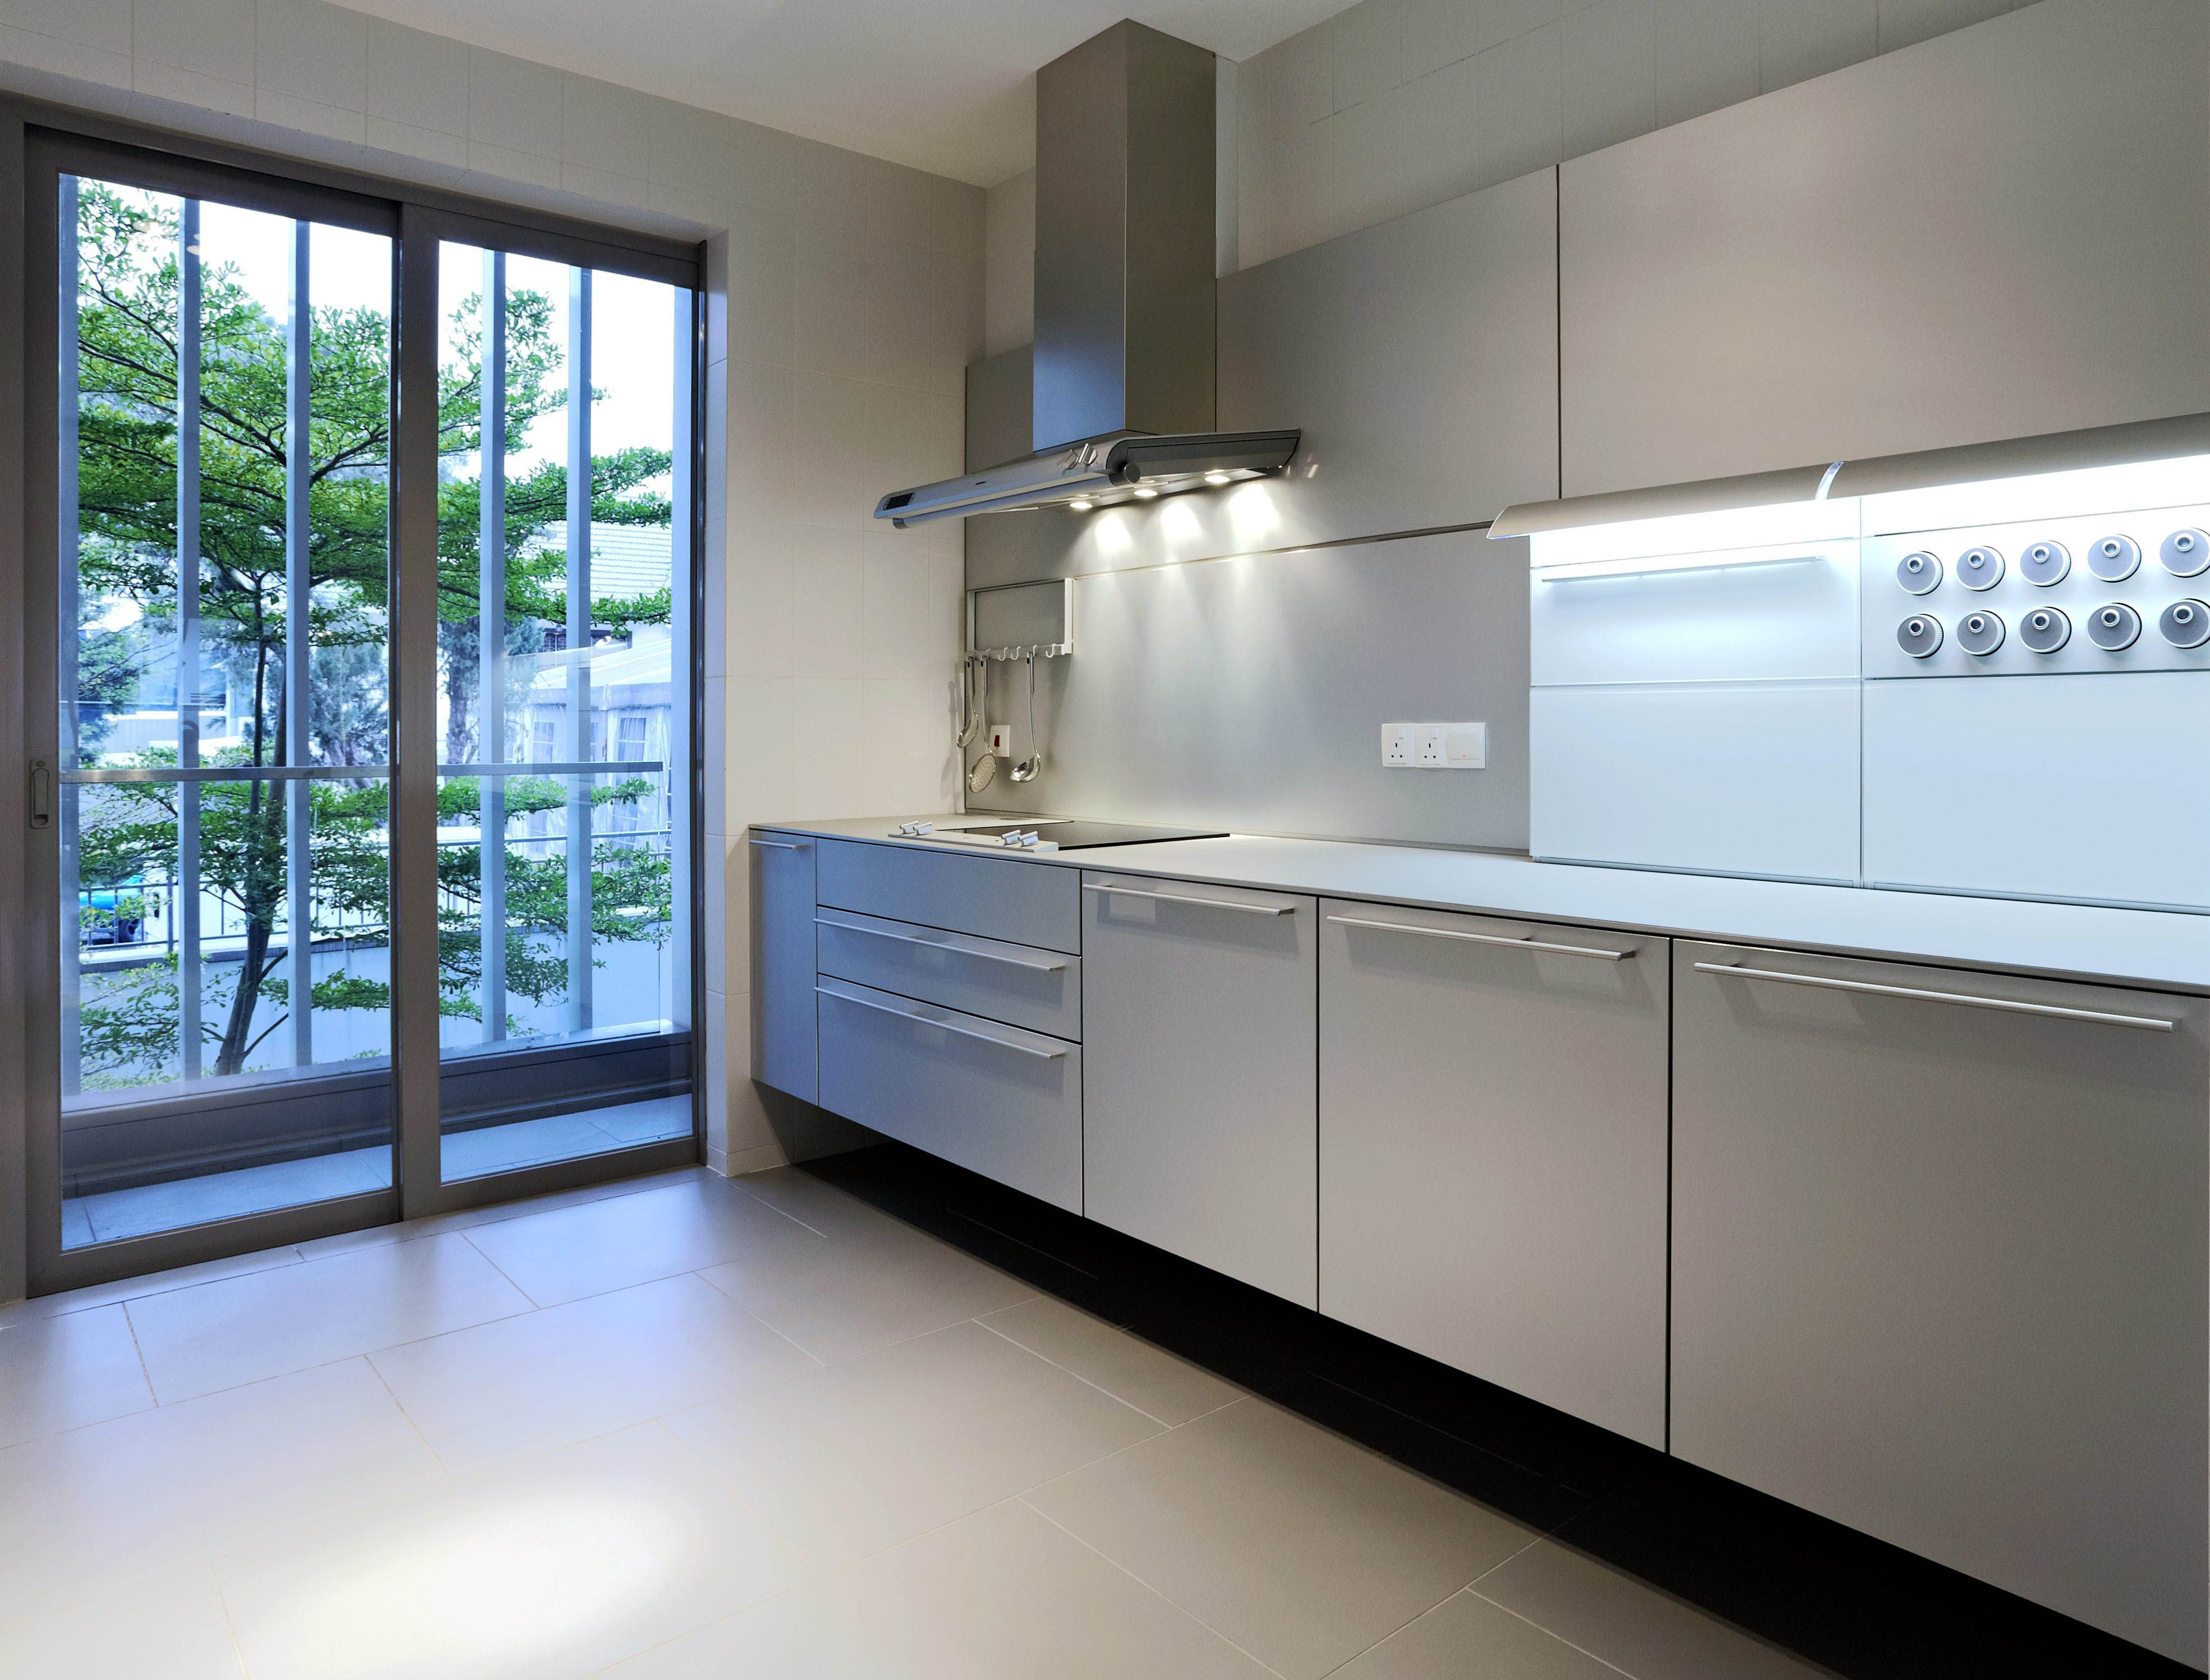 The Wall Mounted Bulthaup B3 In This Kuala Lumpur Residence Gives The Impression The Kitchen Is Floating Photo By Bodo Modern Kitchen Kitchen Kitchen Cabinets